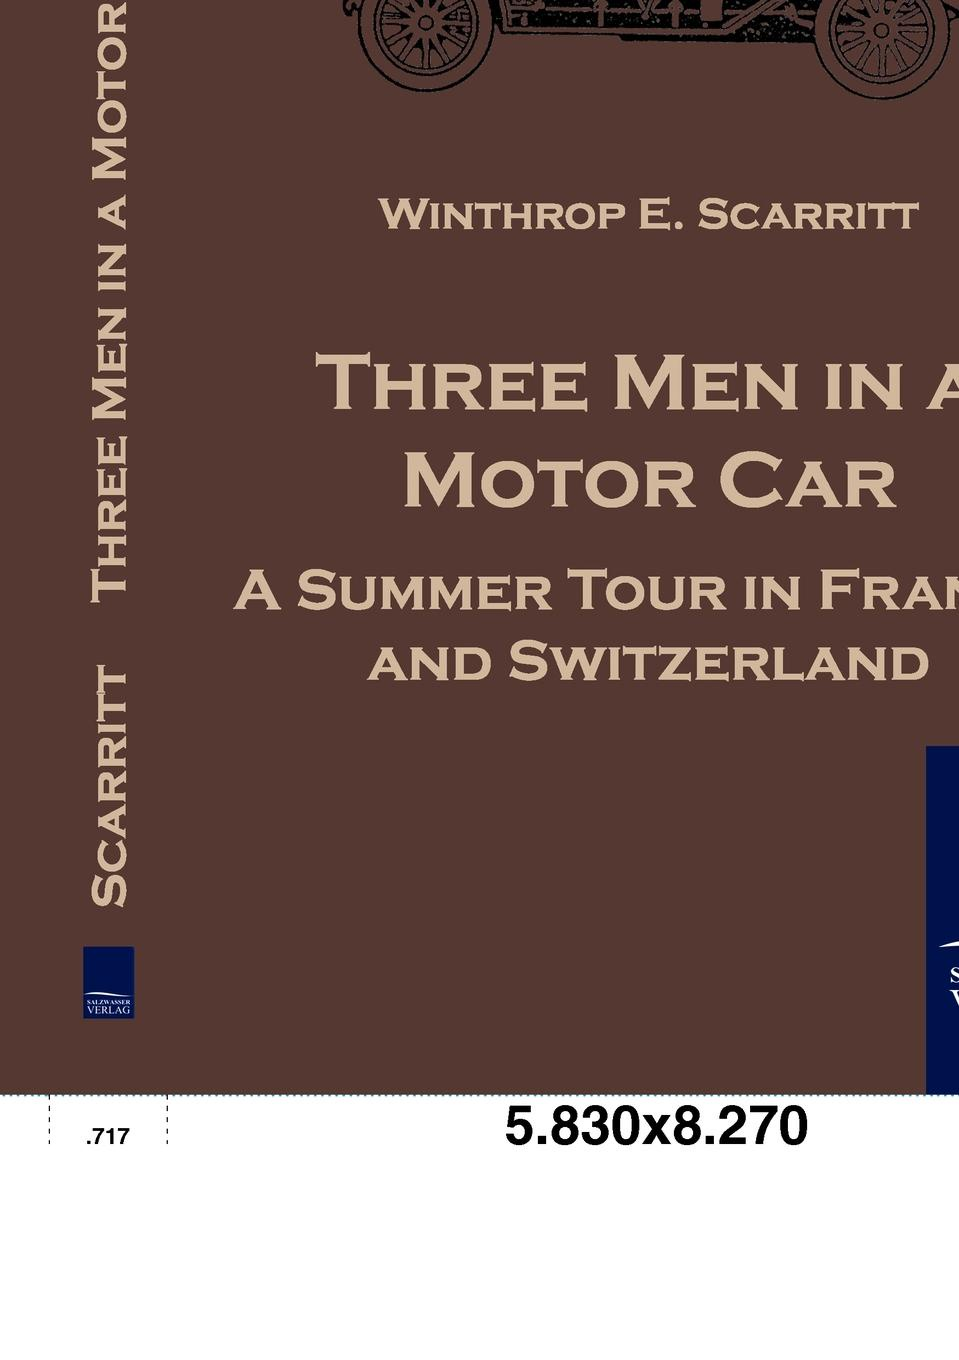 Winthrop E. Scarritt Three Men in a Motor Car